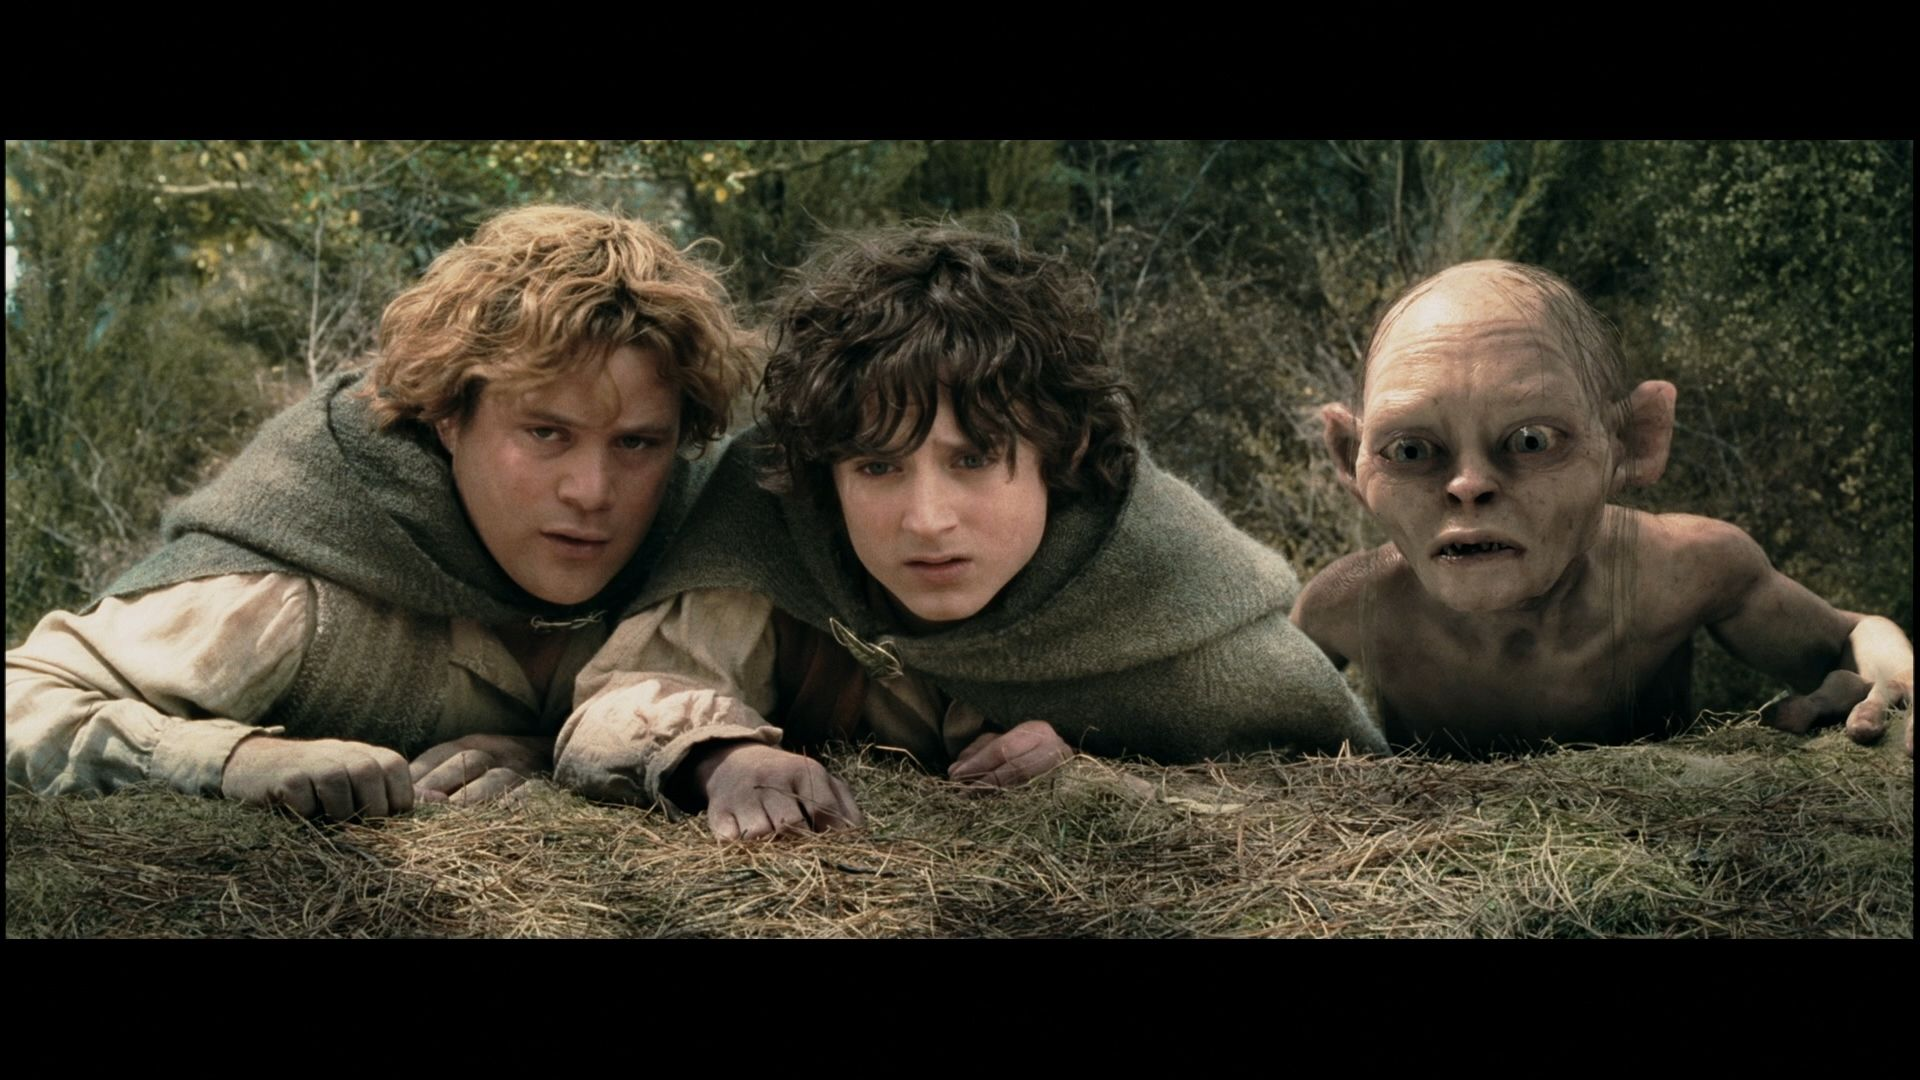 Sam, Frodo and Gollum in 2020 The two towers, Lord of